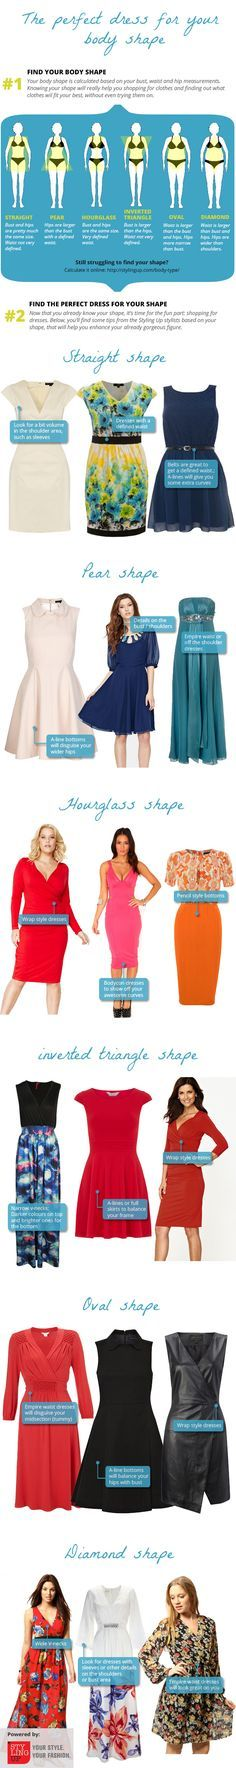 What dress type is best for your body shape?